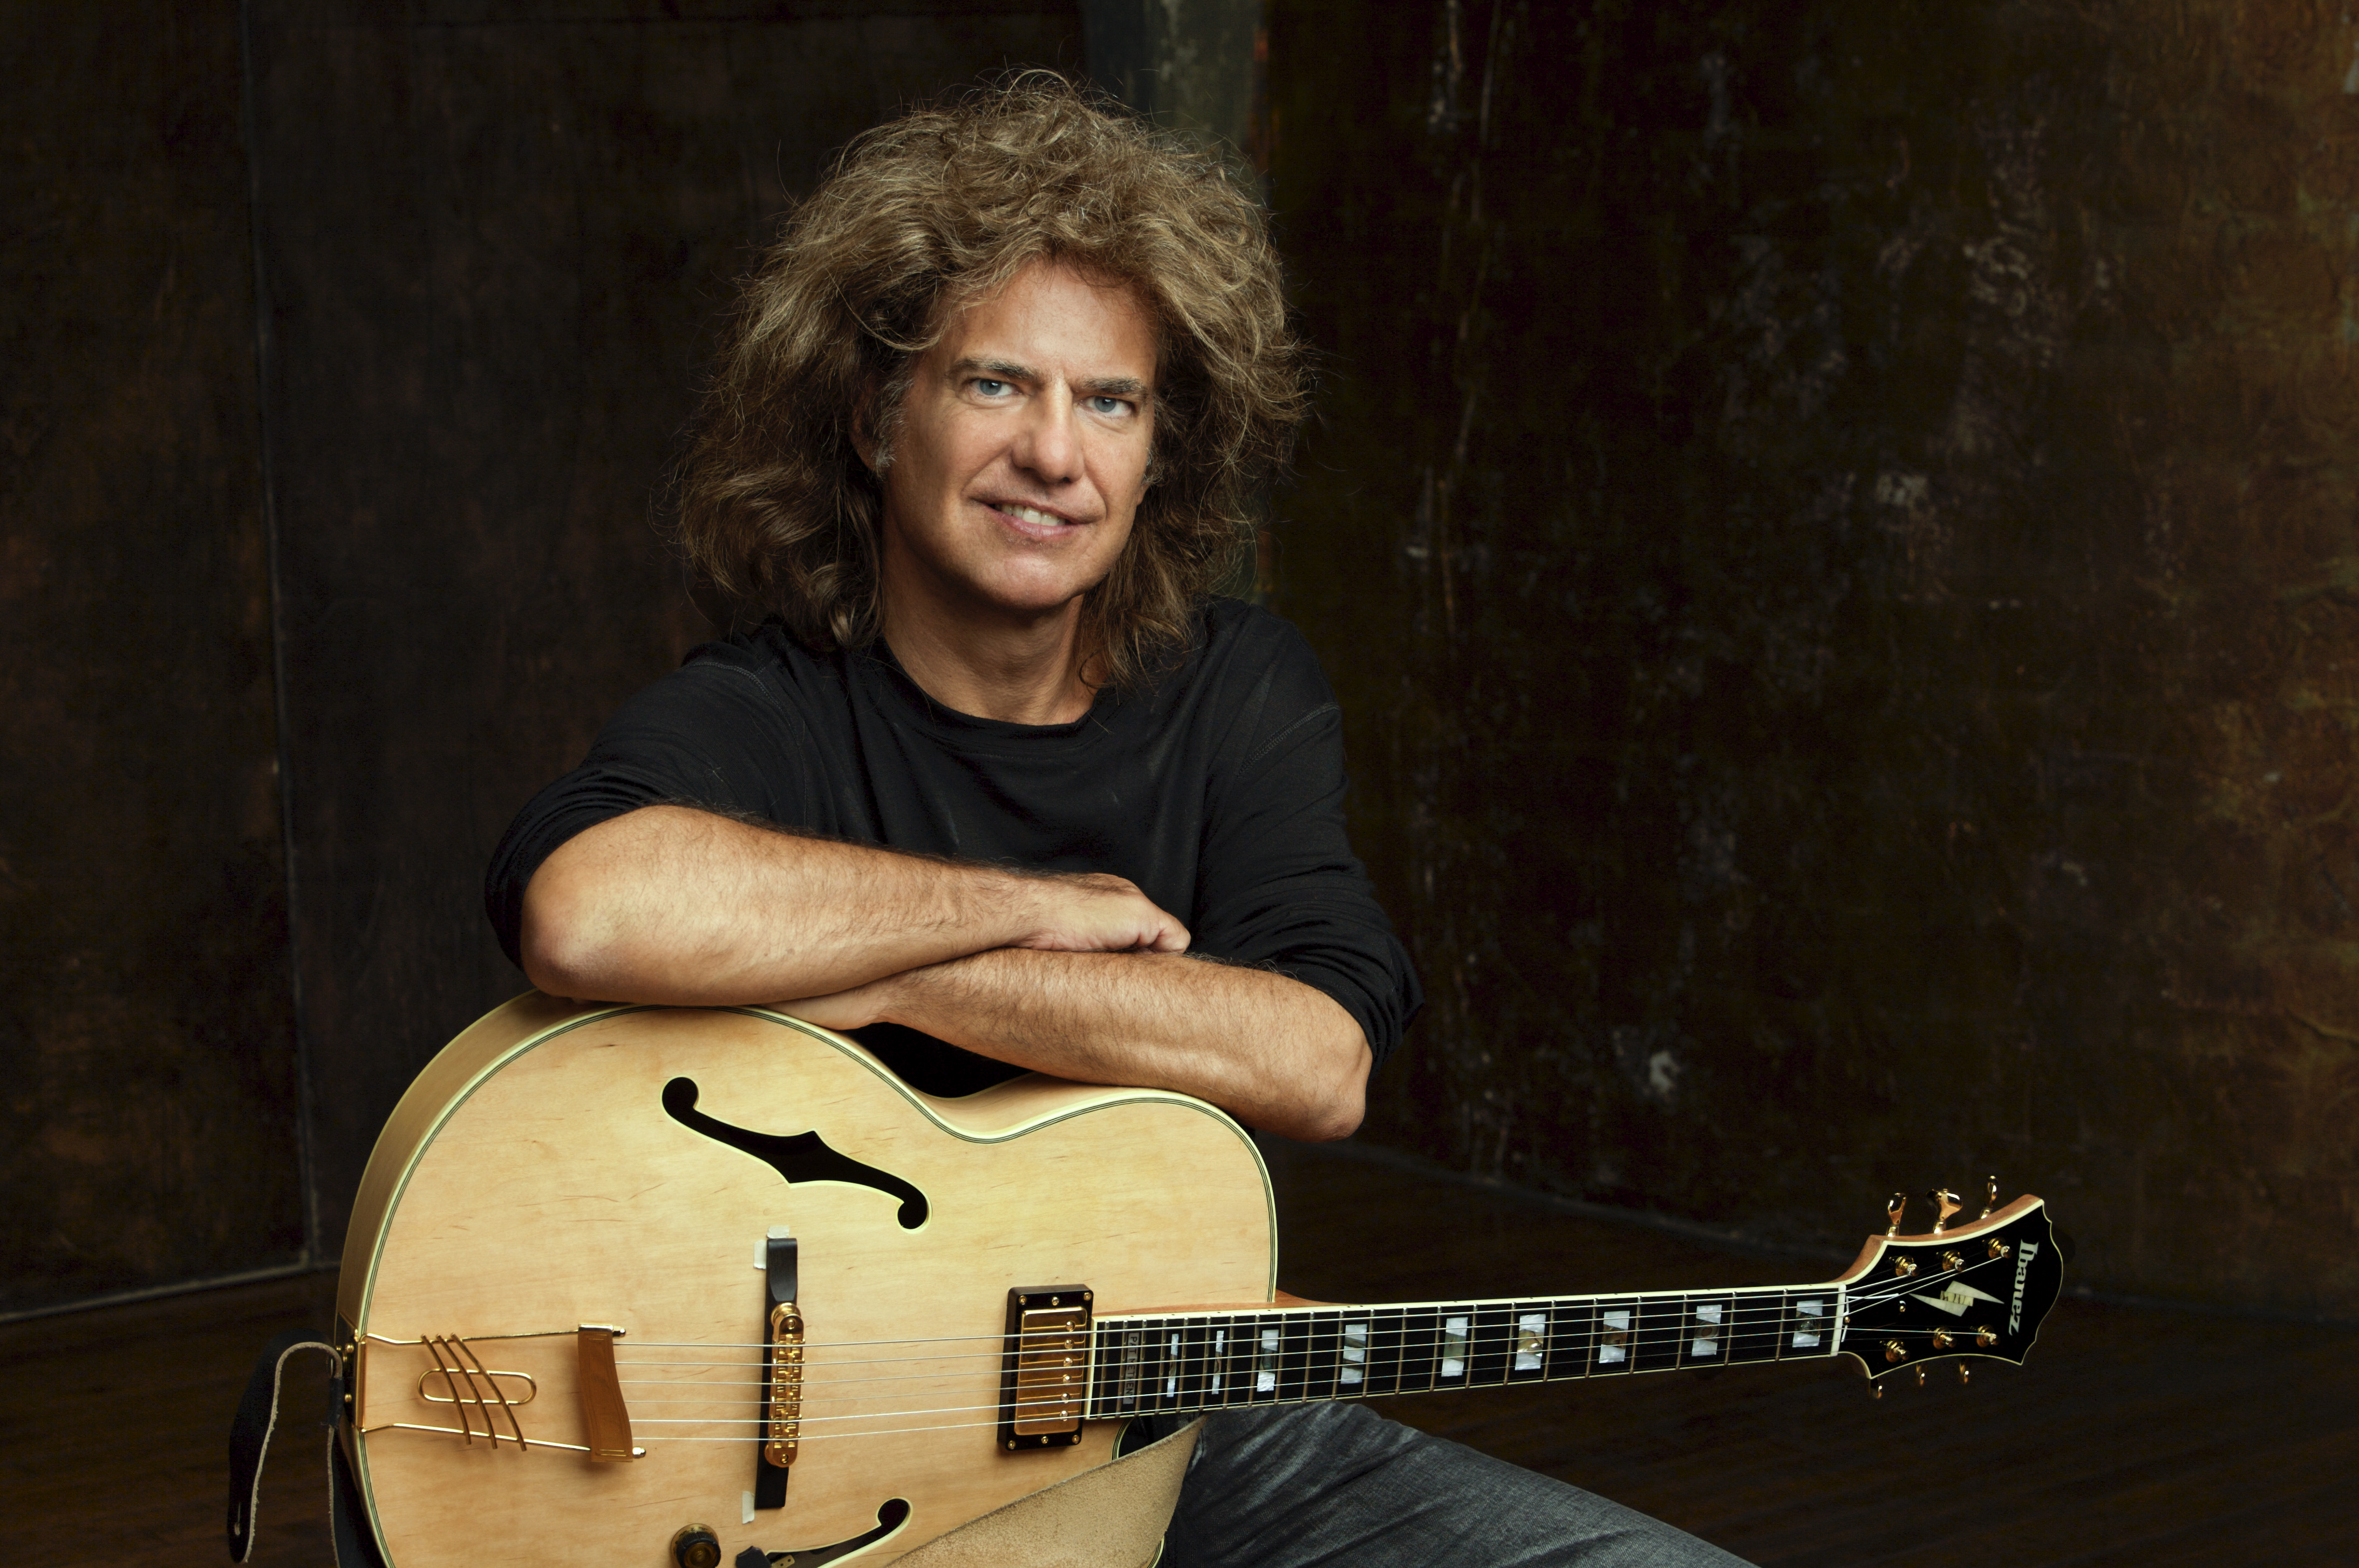 Photo of Pat Metheny by Jimmy Katz